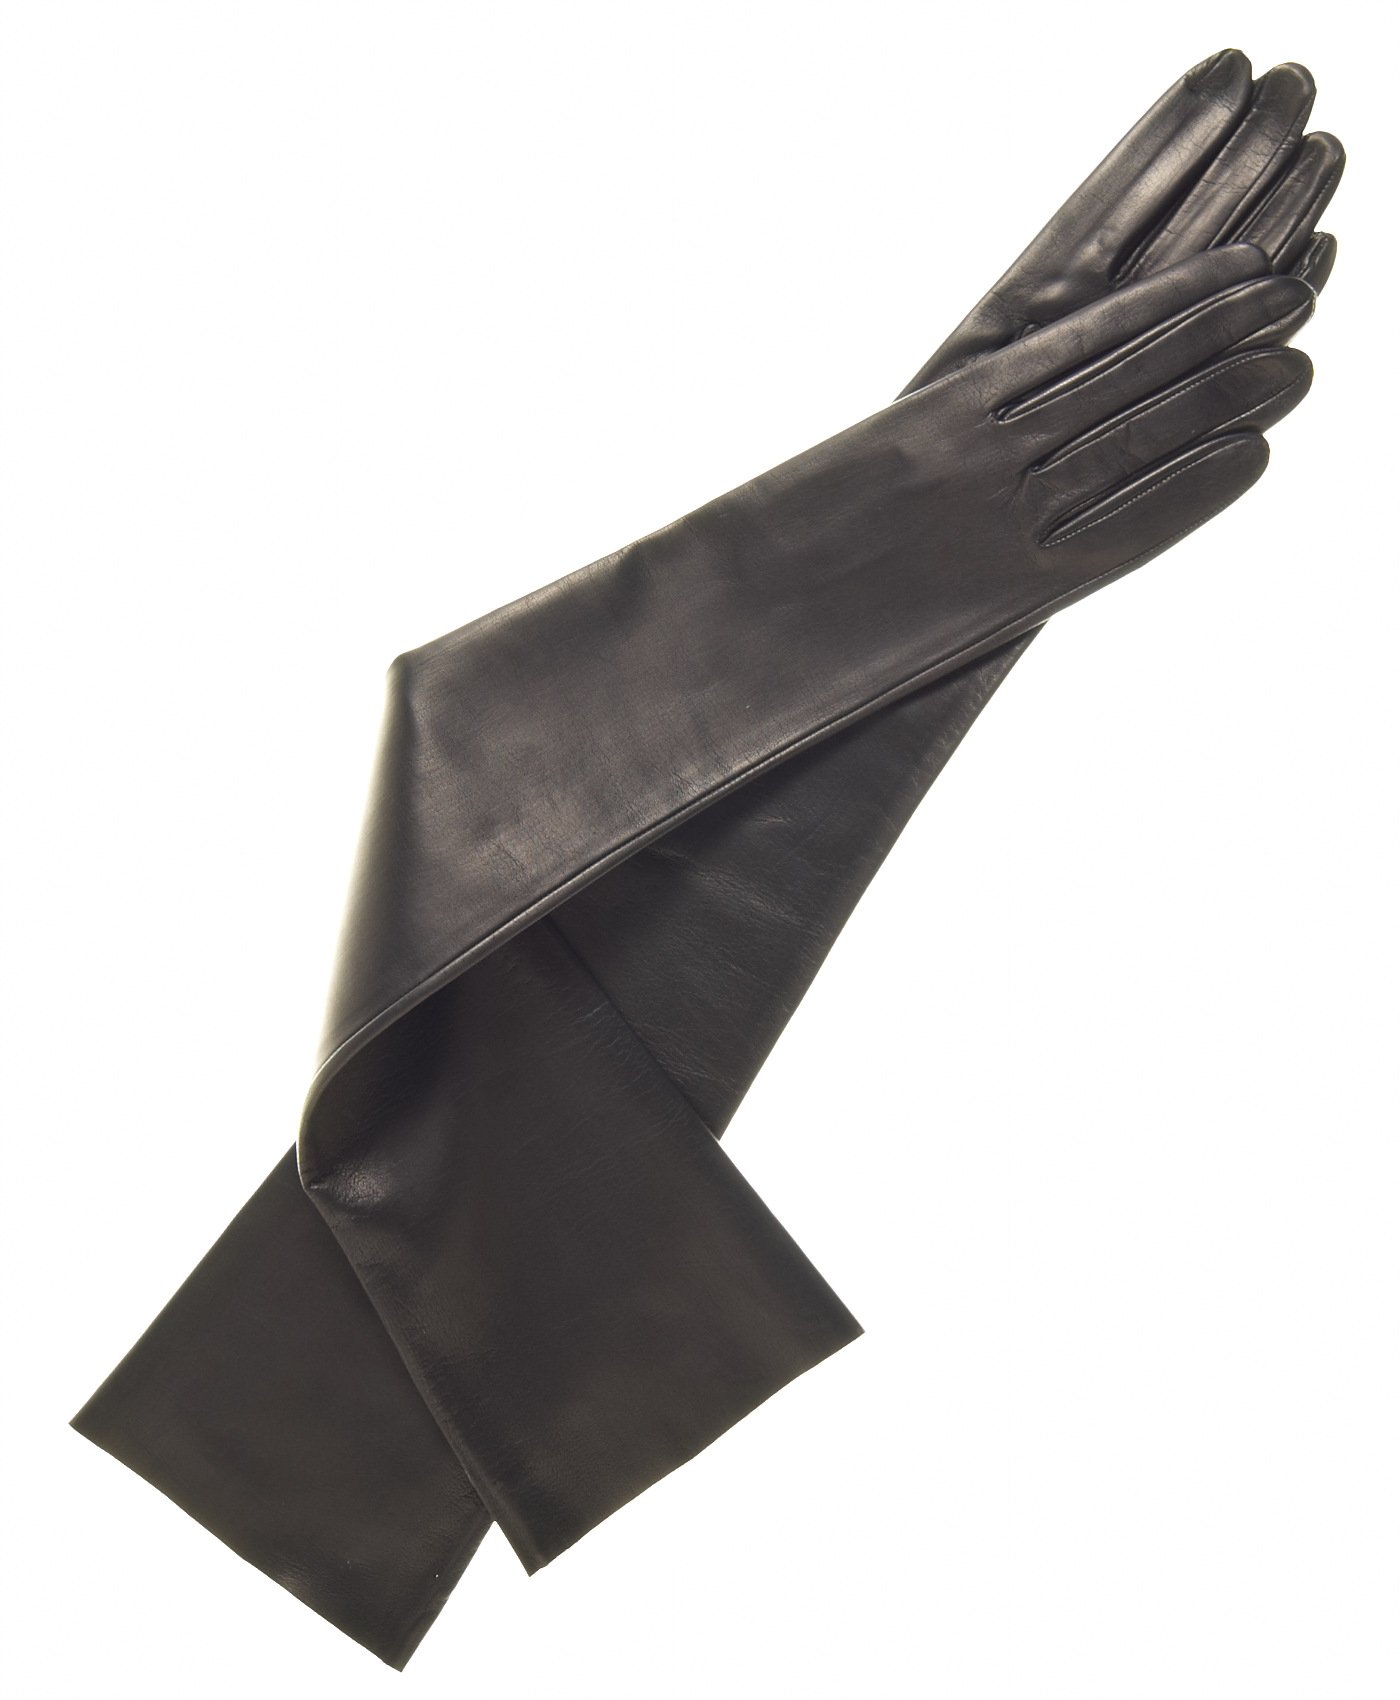 Fratelli Orsini Women's Italian Unlined Opera Length Leather Gloves Size 7 1/2 Color Black